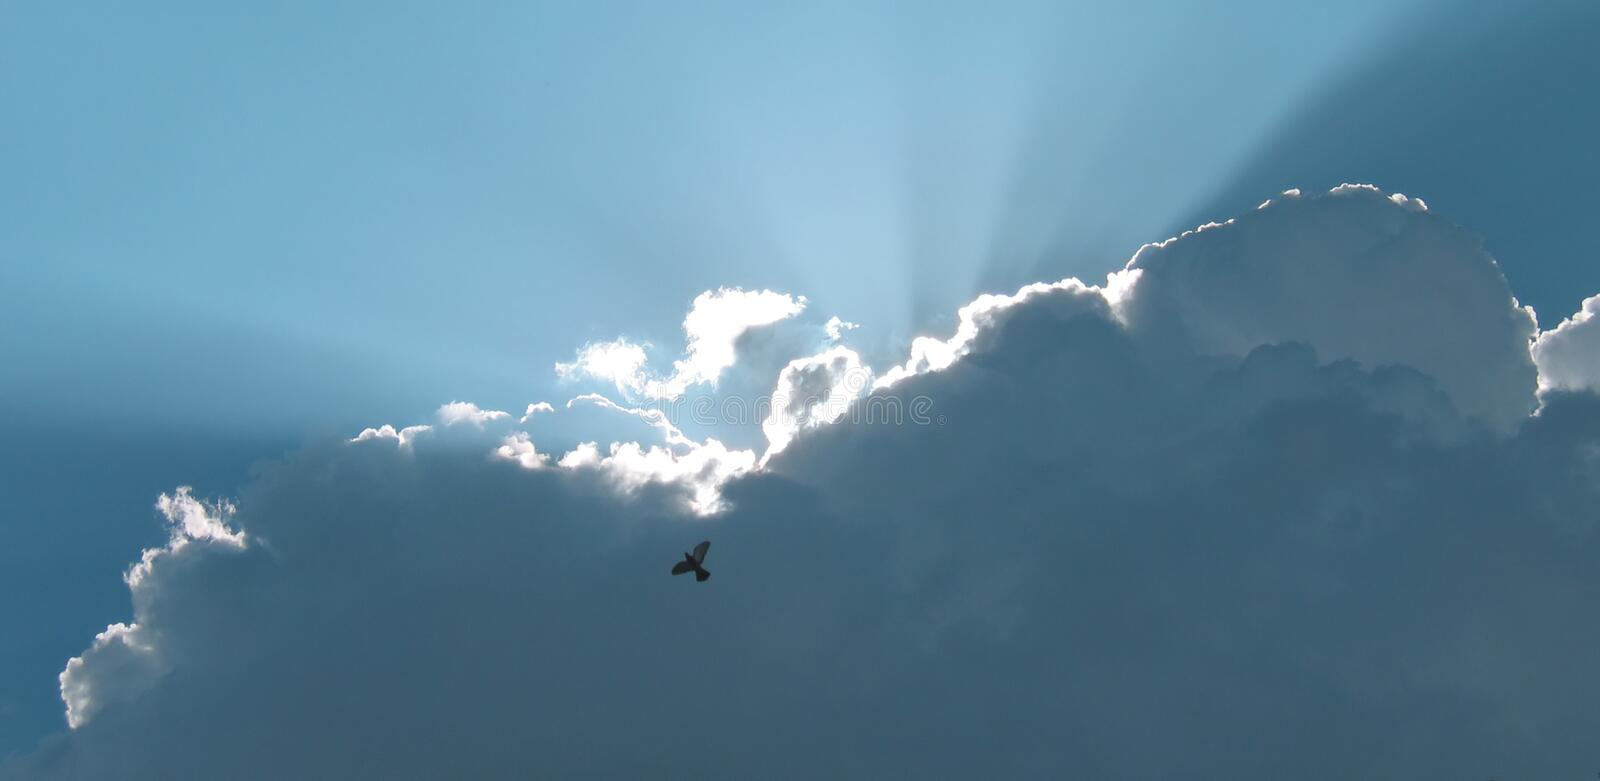 Light Breaking Behind Clouds royalty free stock image